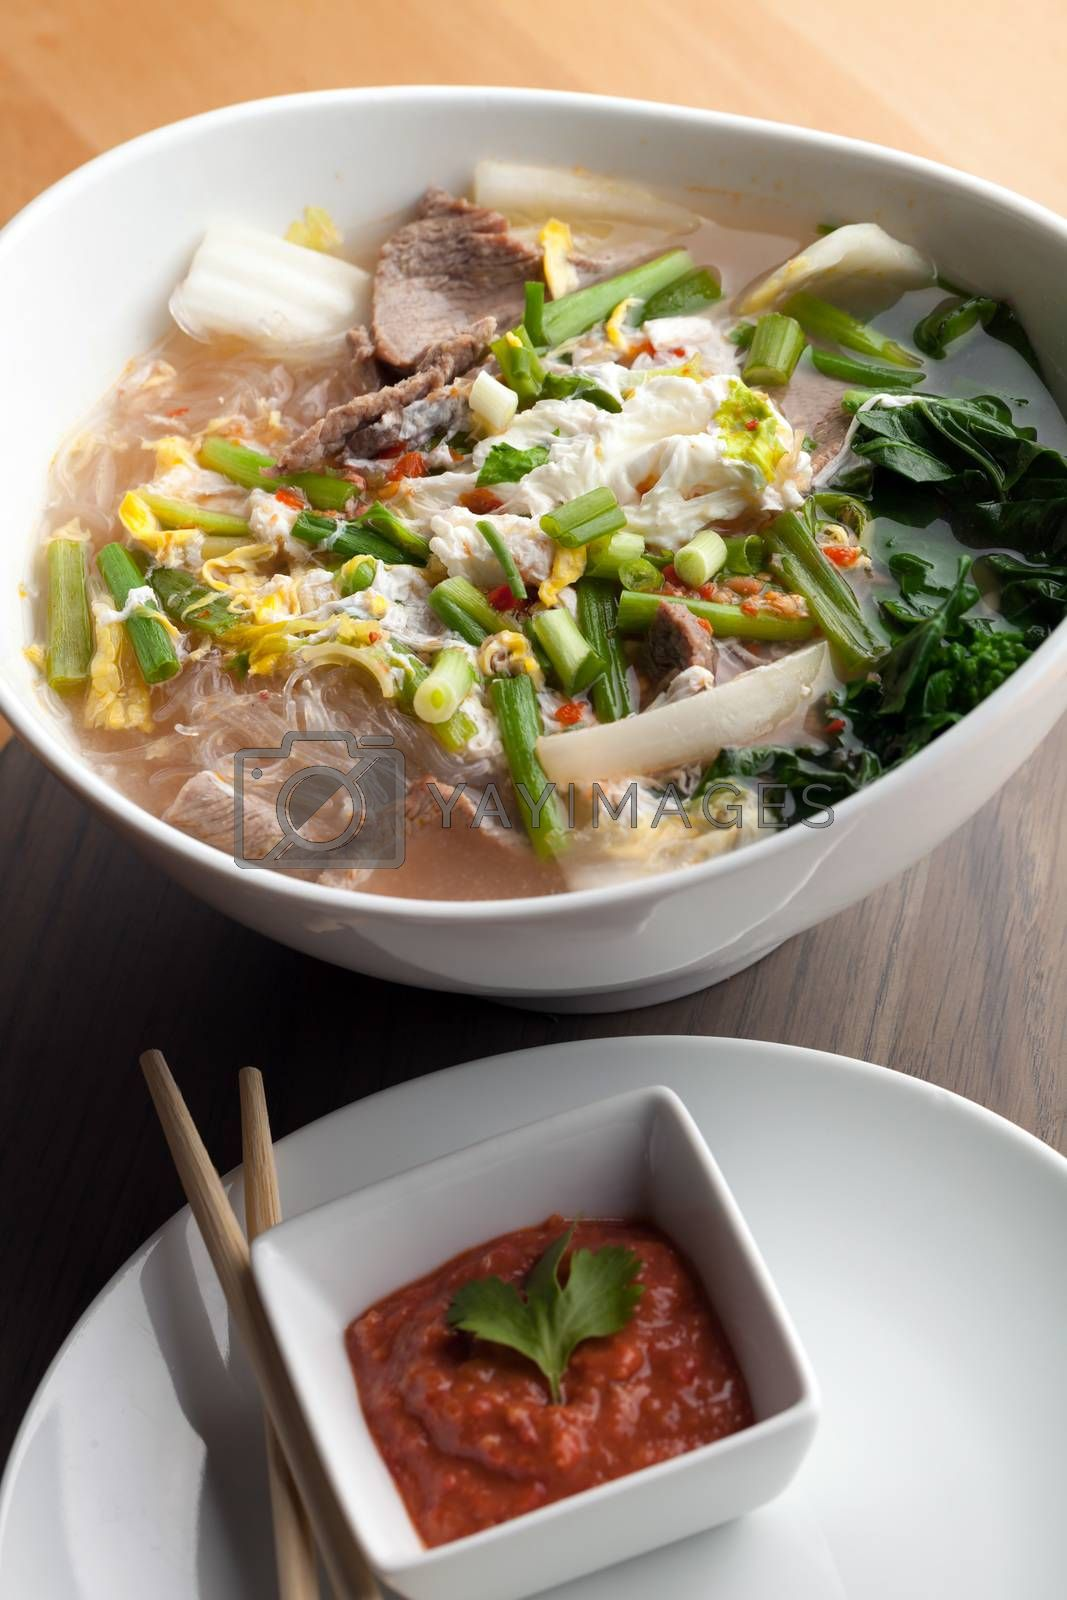 Closeup of some Thai pho style soup with beef and clear rice noodles. Sriracha dipping sauce.